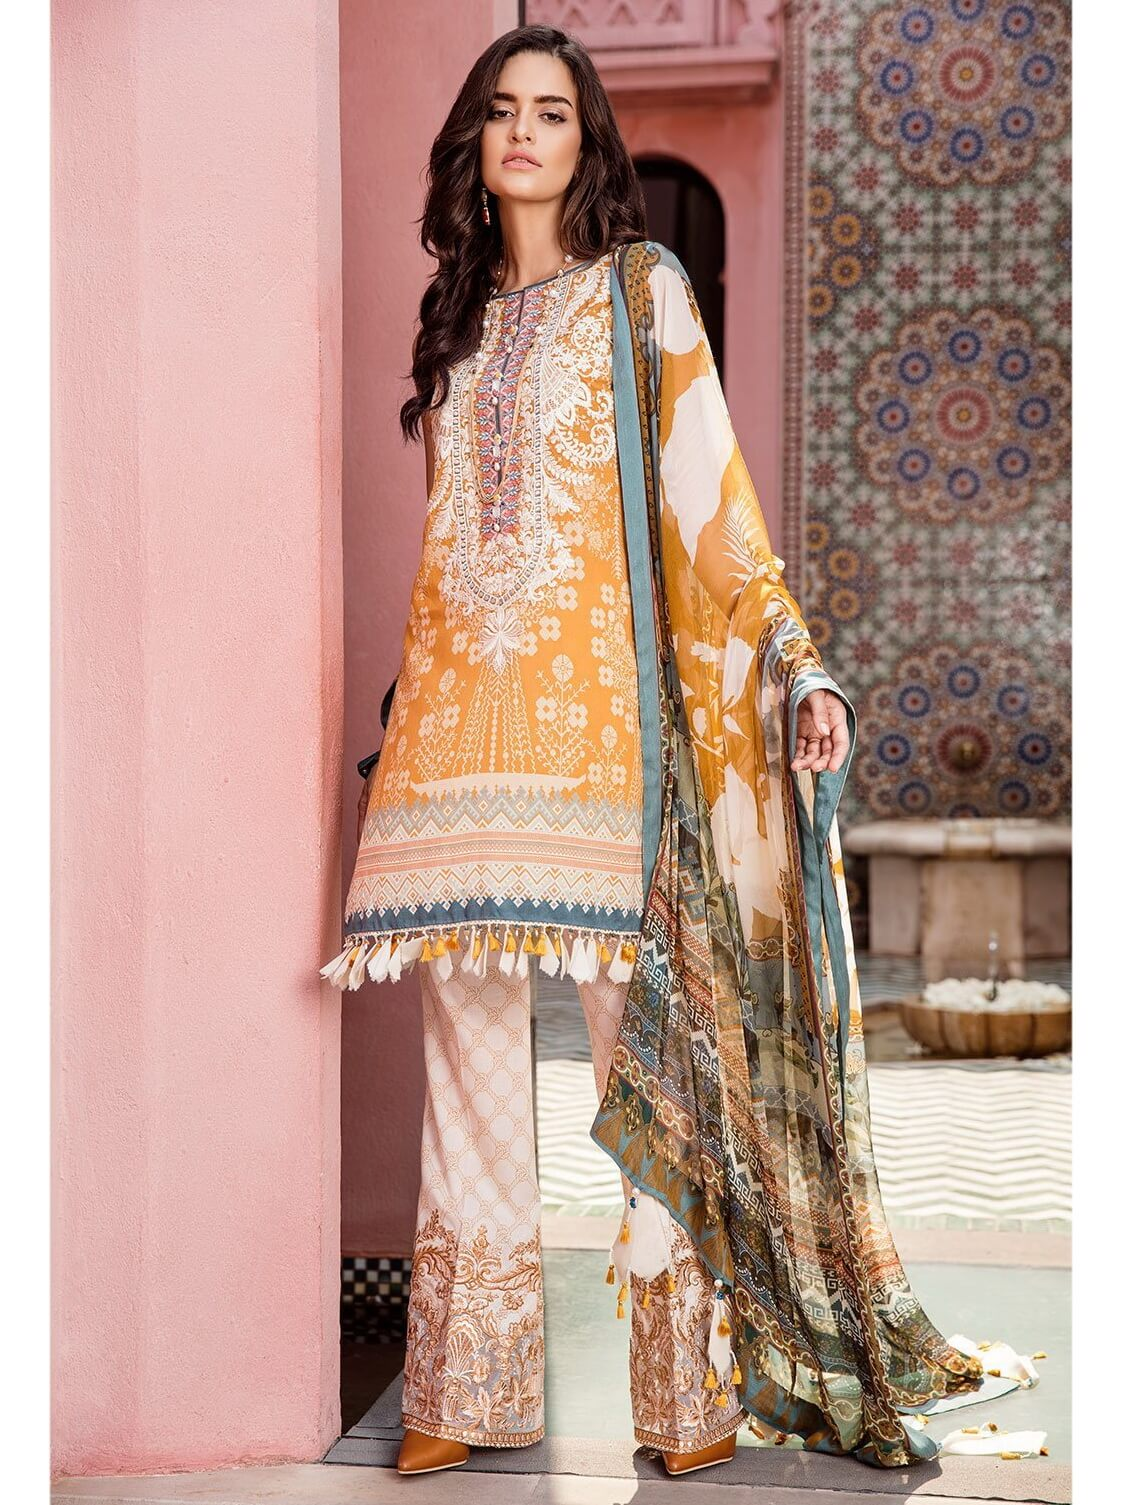 BAROQUE Luxury Lawn Embroidered 3Pc Suit Summer 2019 BQ 08 Morning Glory - FaisalFabrics.pk